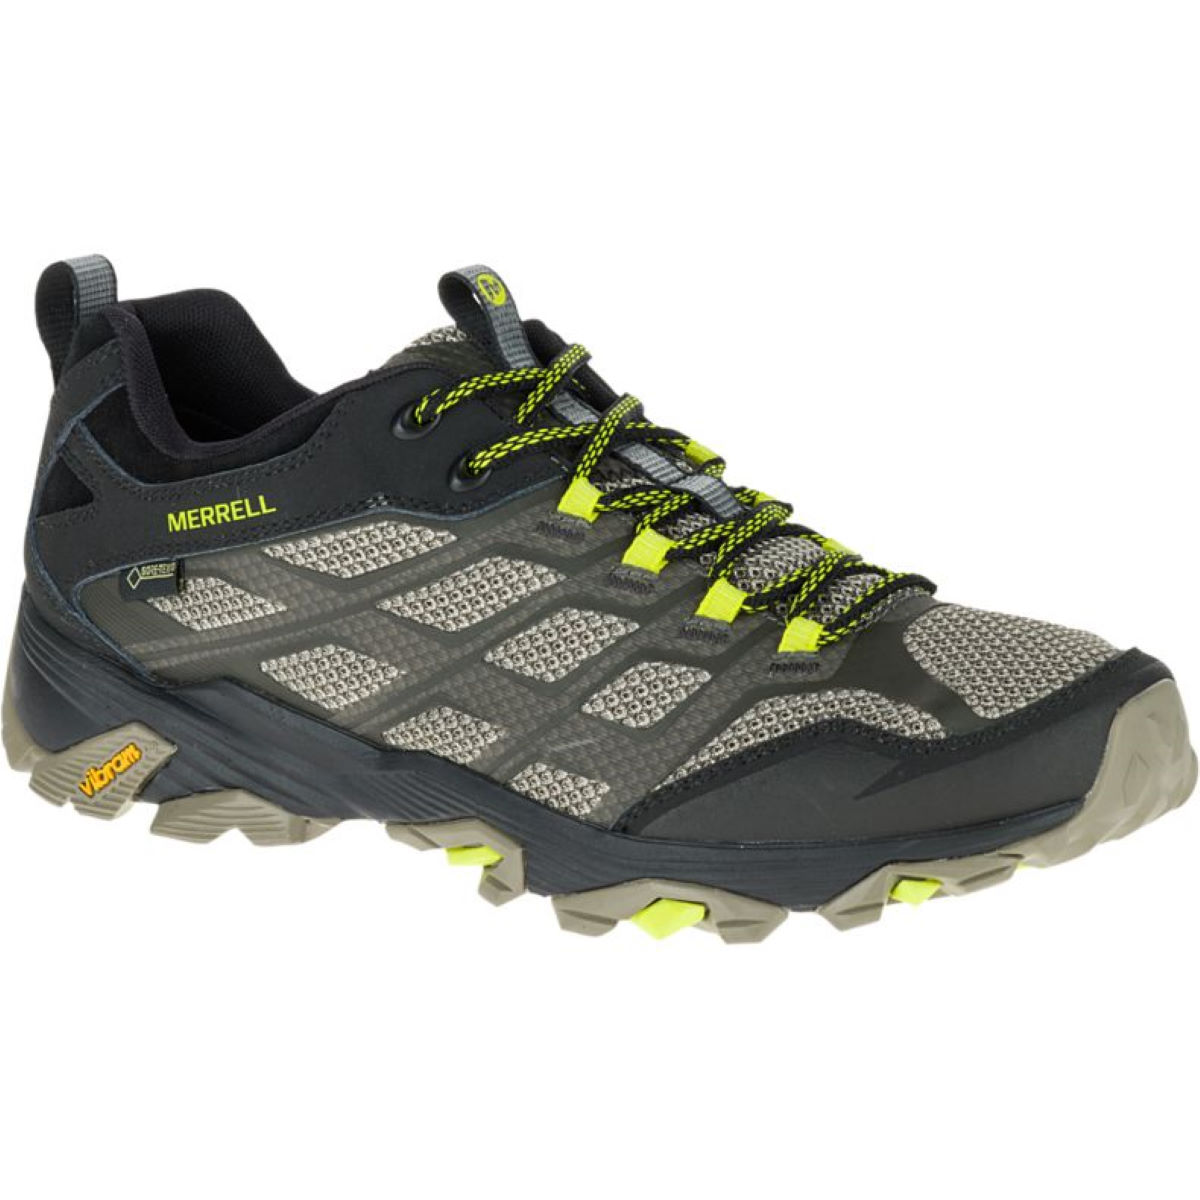 Chaussures Merrell MOAB FST GTX - 10 Olive Black Chaussures